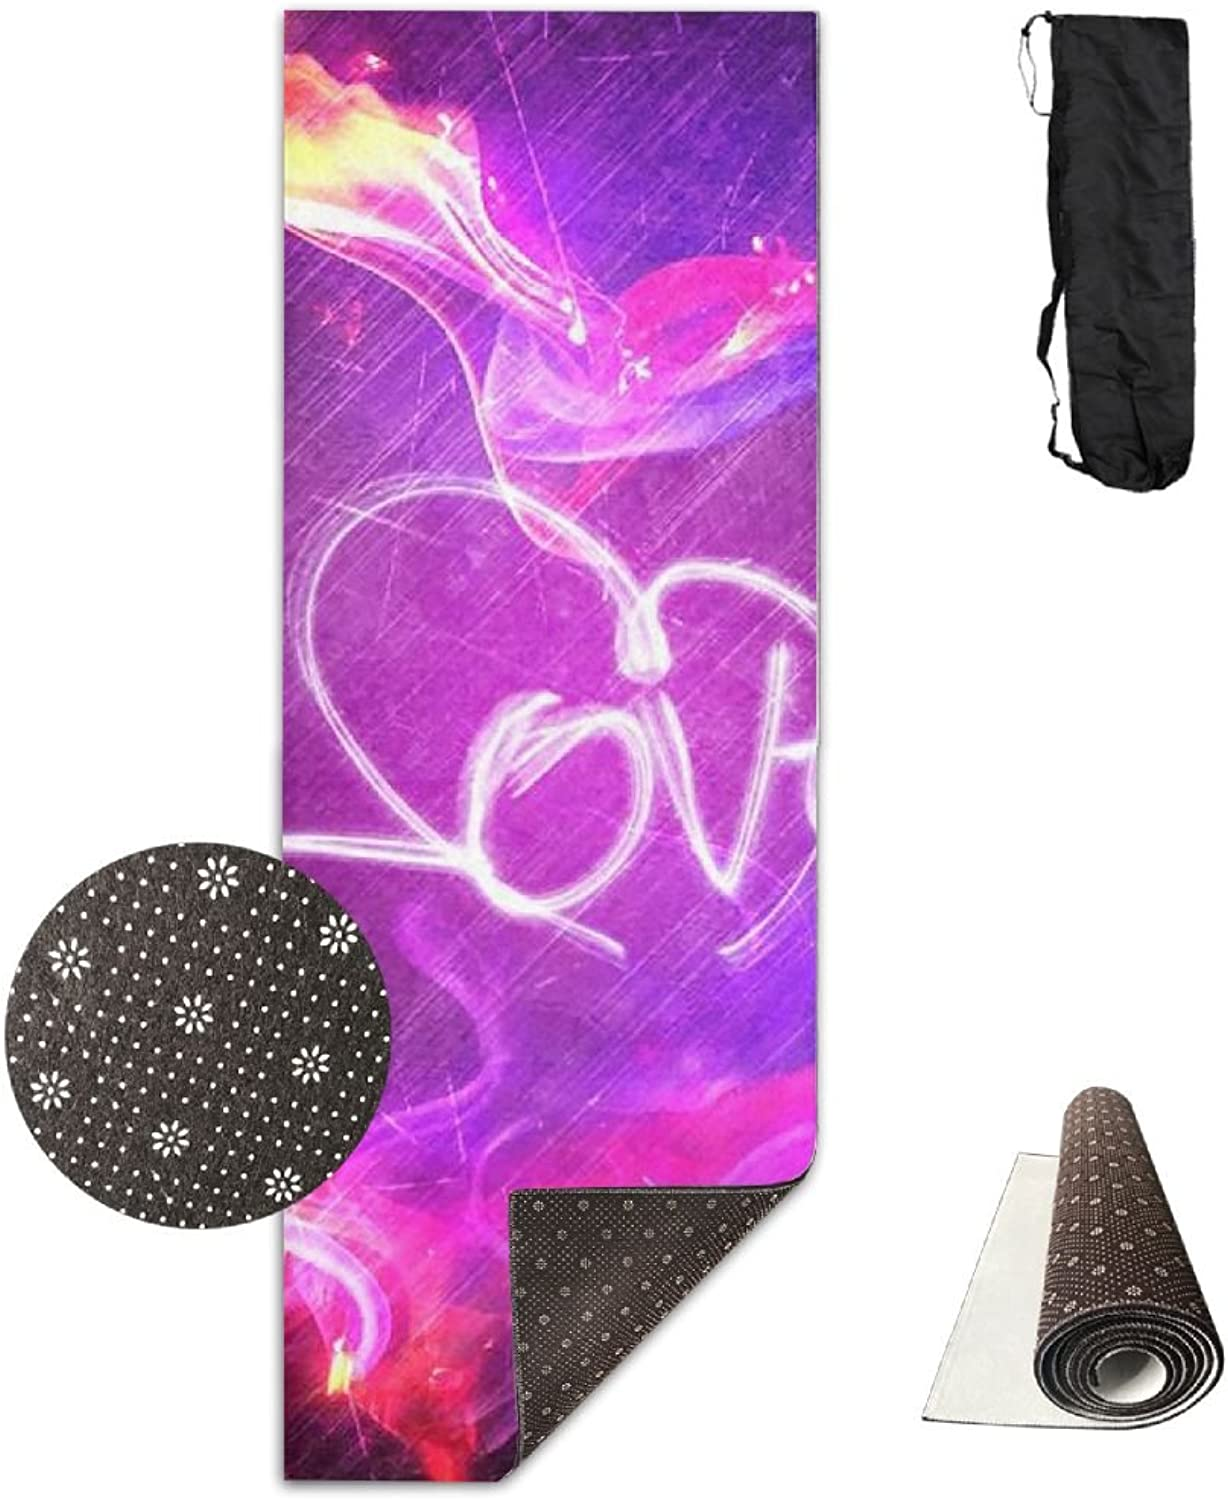 Non Slip Yoga Mat Cool Hearts Premium Printed 24 X 71 Inches Great for Exercise Pilates Gymnastics Carrying Strap